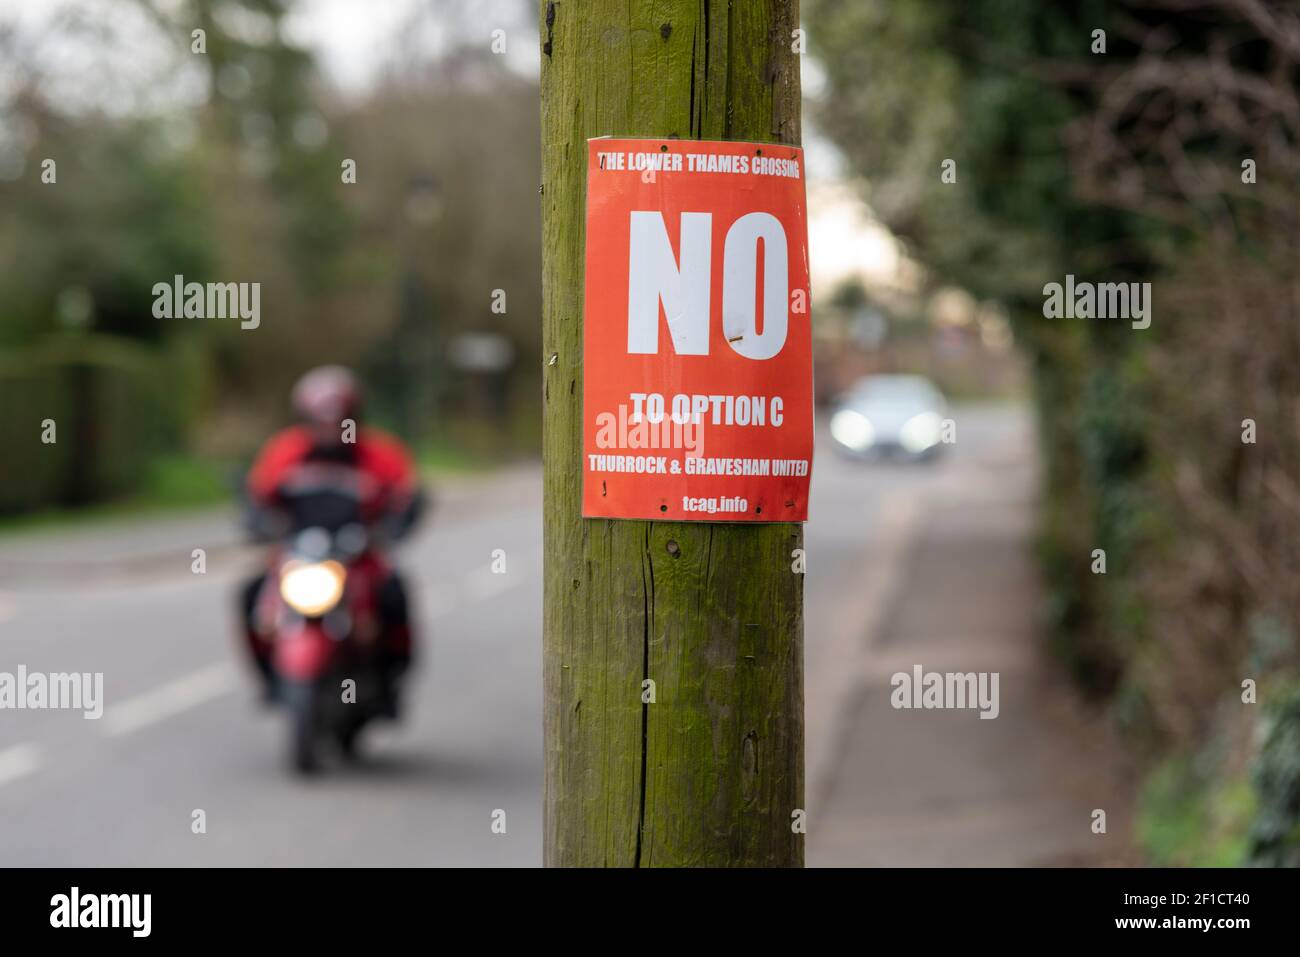 lower-thames-crossing-road-development-protest-poster-in-orsett-essex-uk-opposing-option-c-which-is-planned-to-pass-close-by-the-village-2F1CT40.jpg